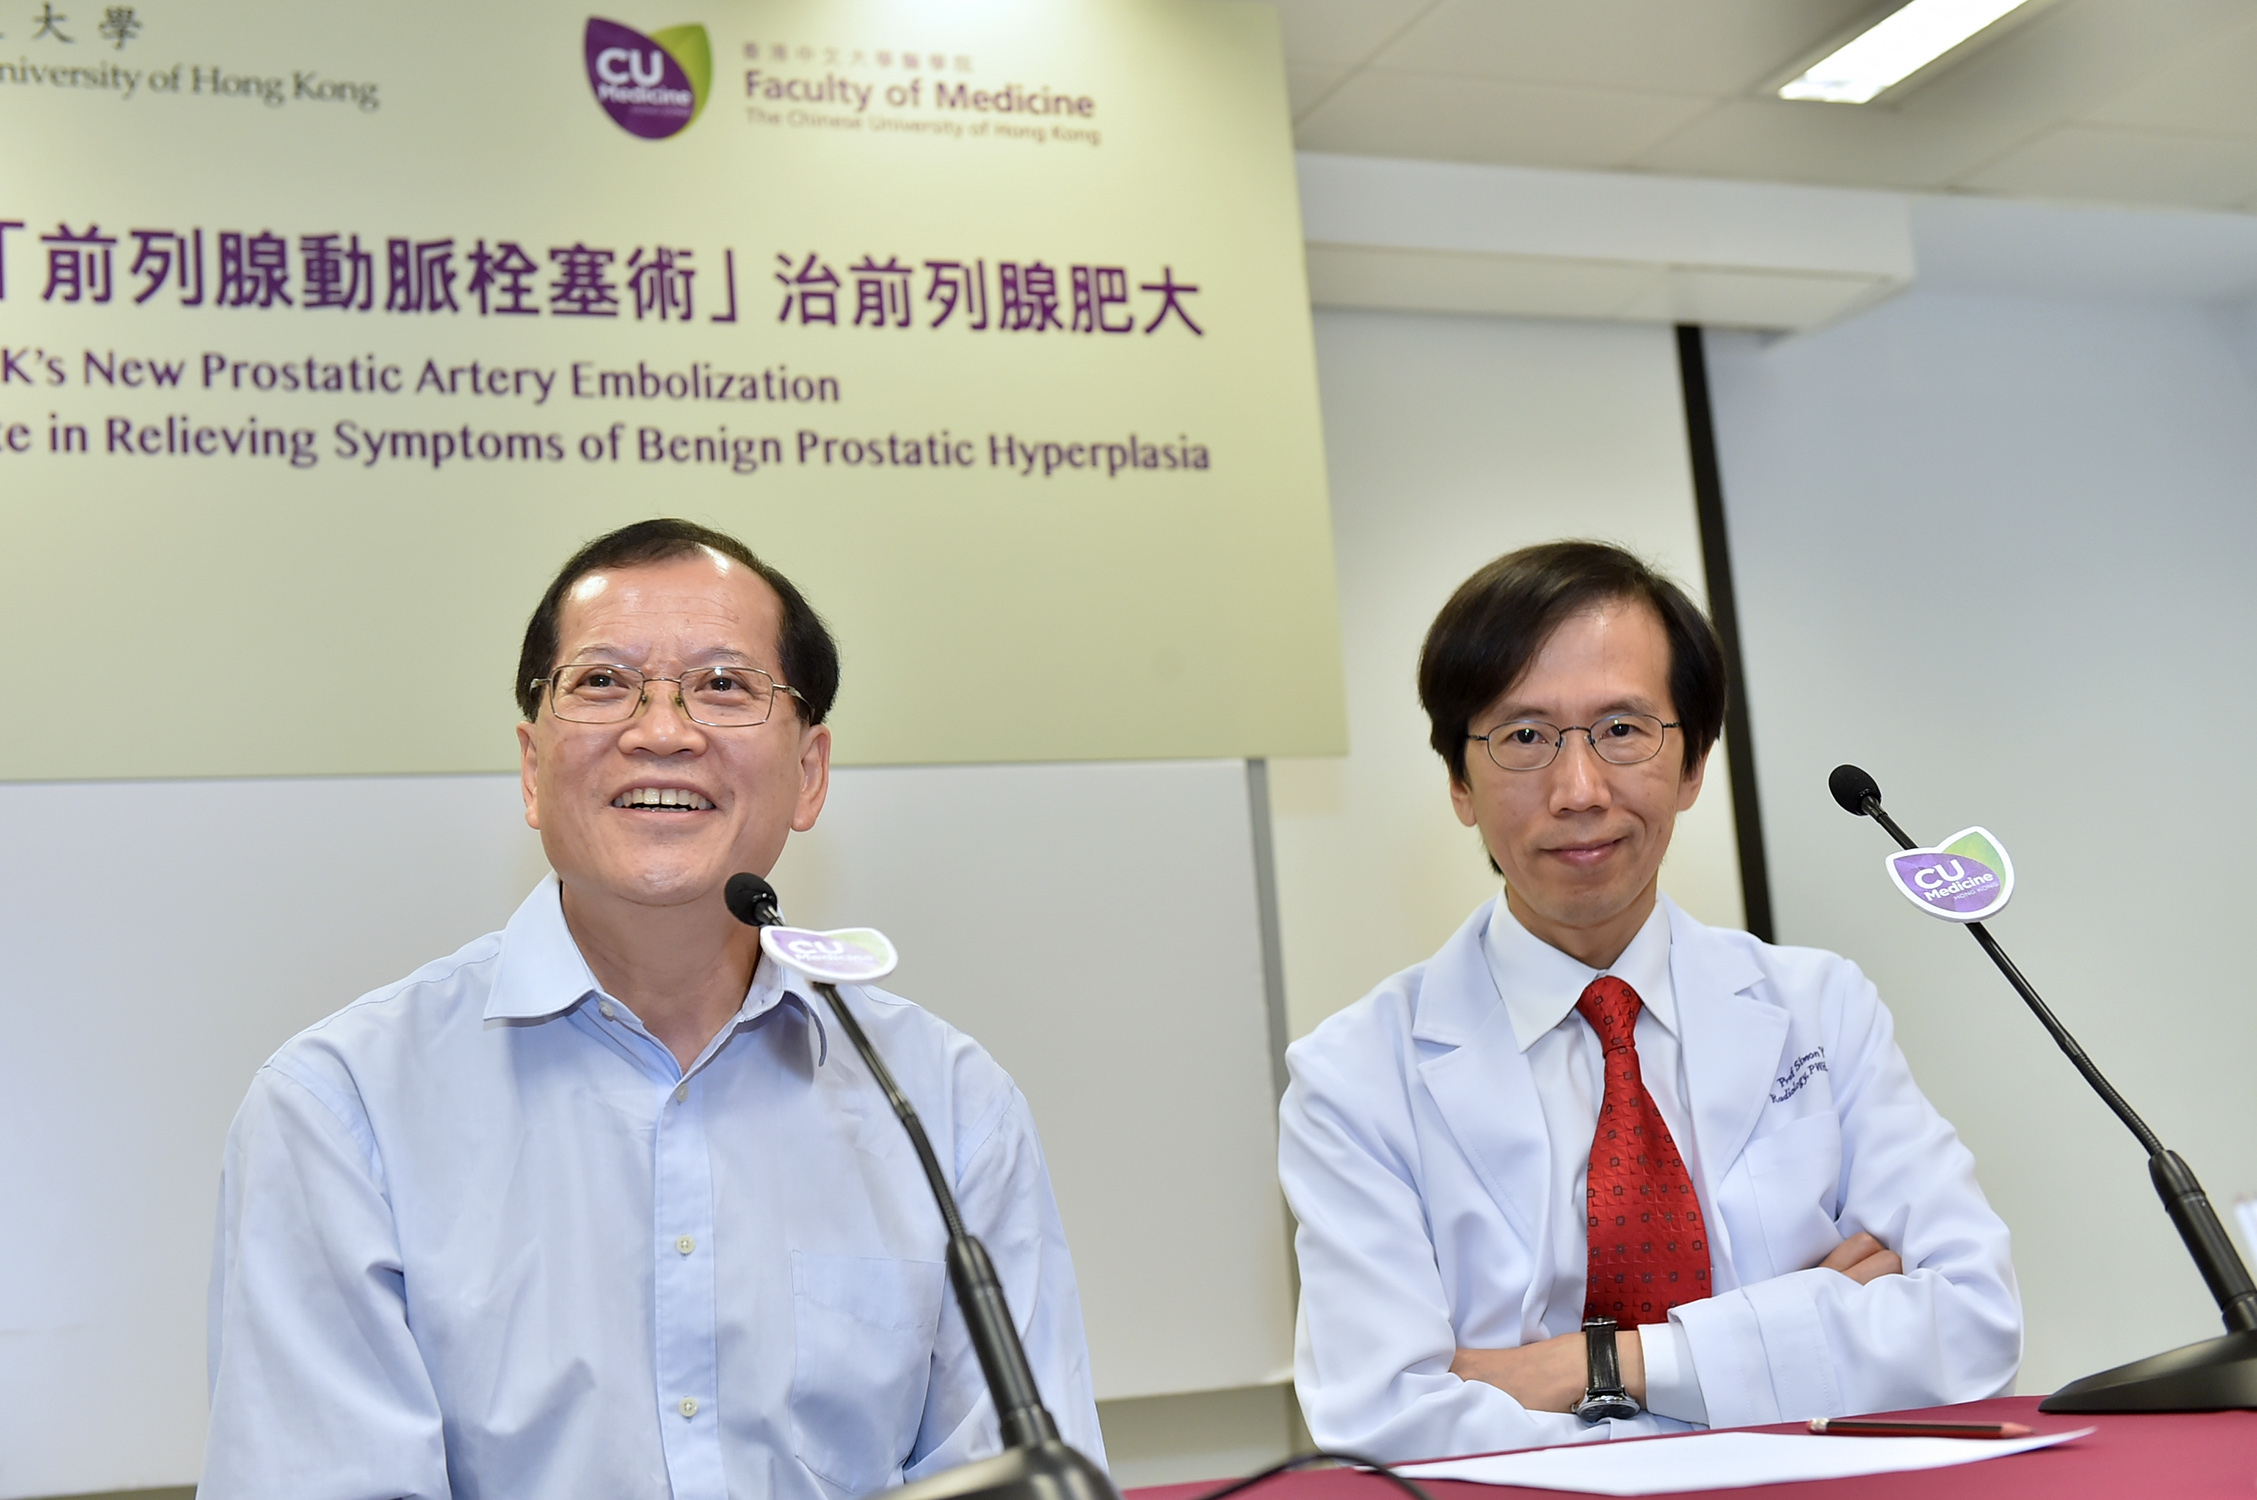 Mr. Wong (left) required Foley catheterization of urinary bladder due to severe obstruction of urethra. He can now pass urine normally after undergoing PAE in August 2015.